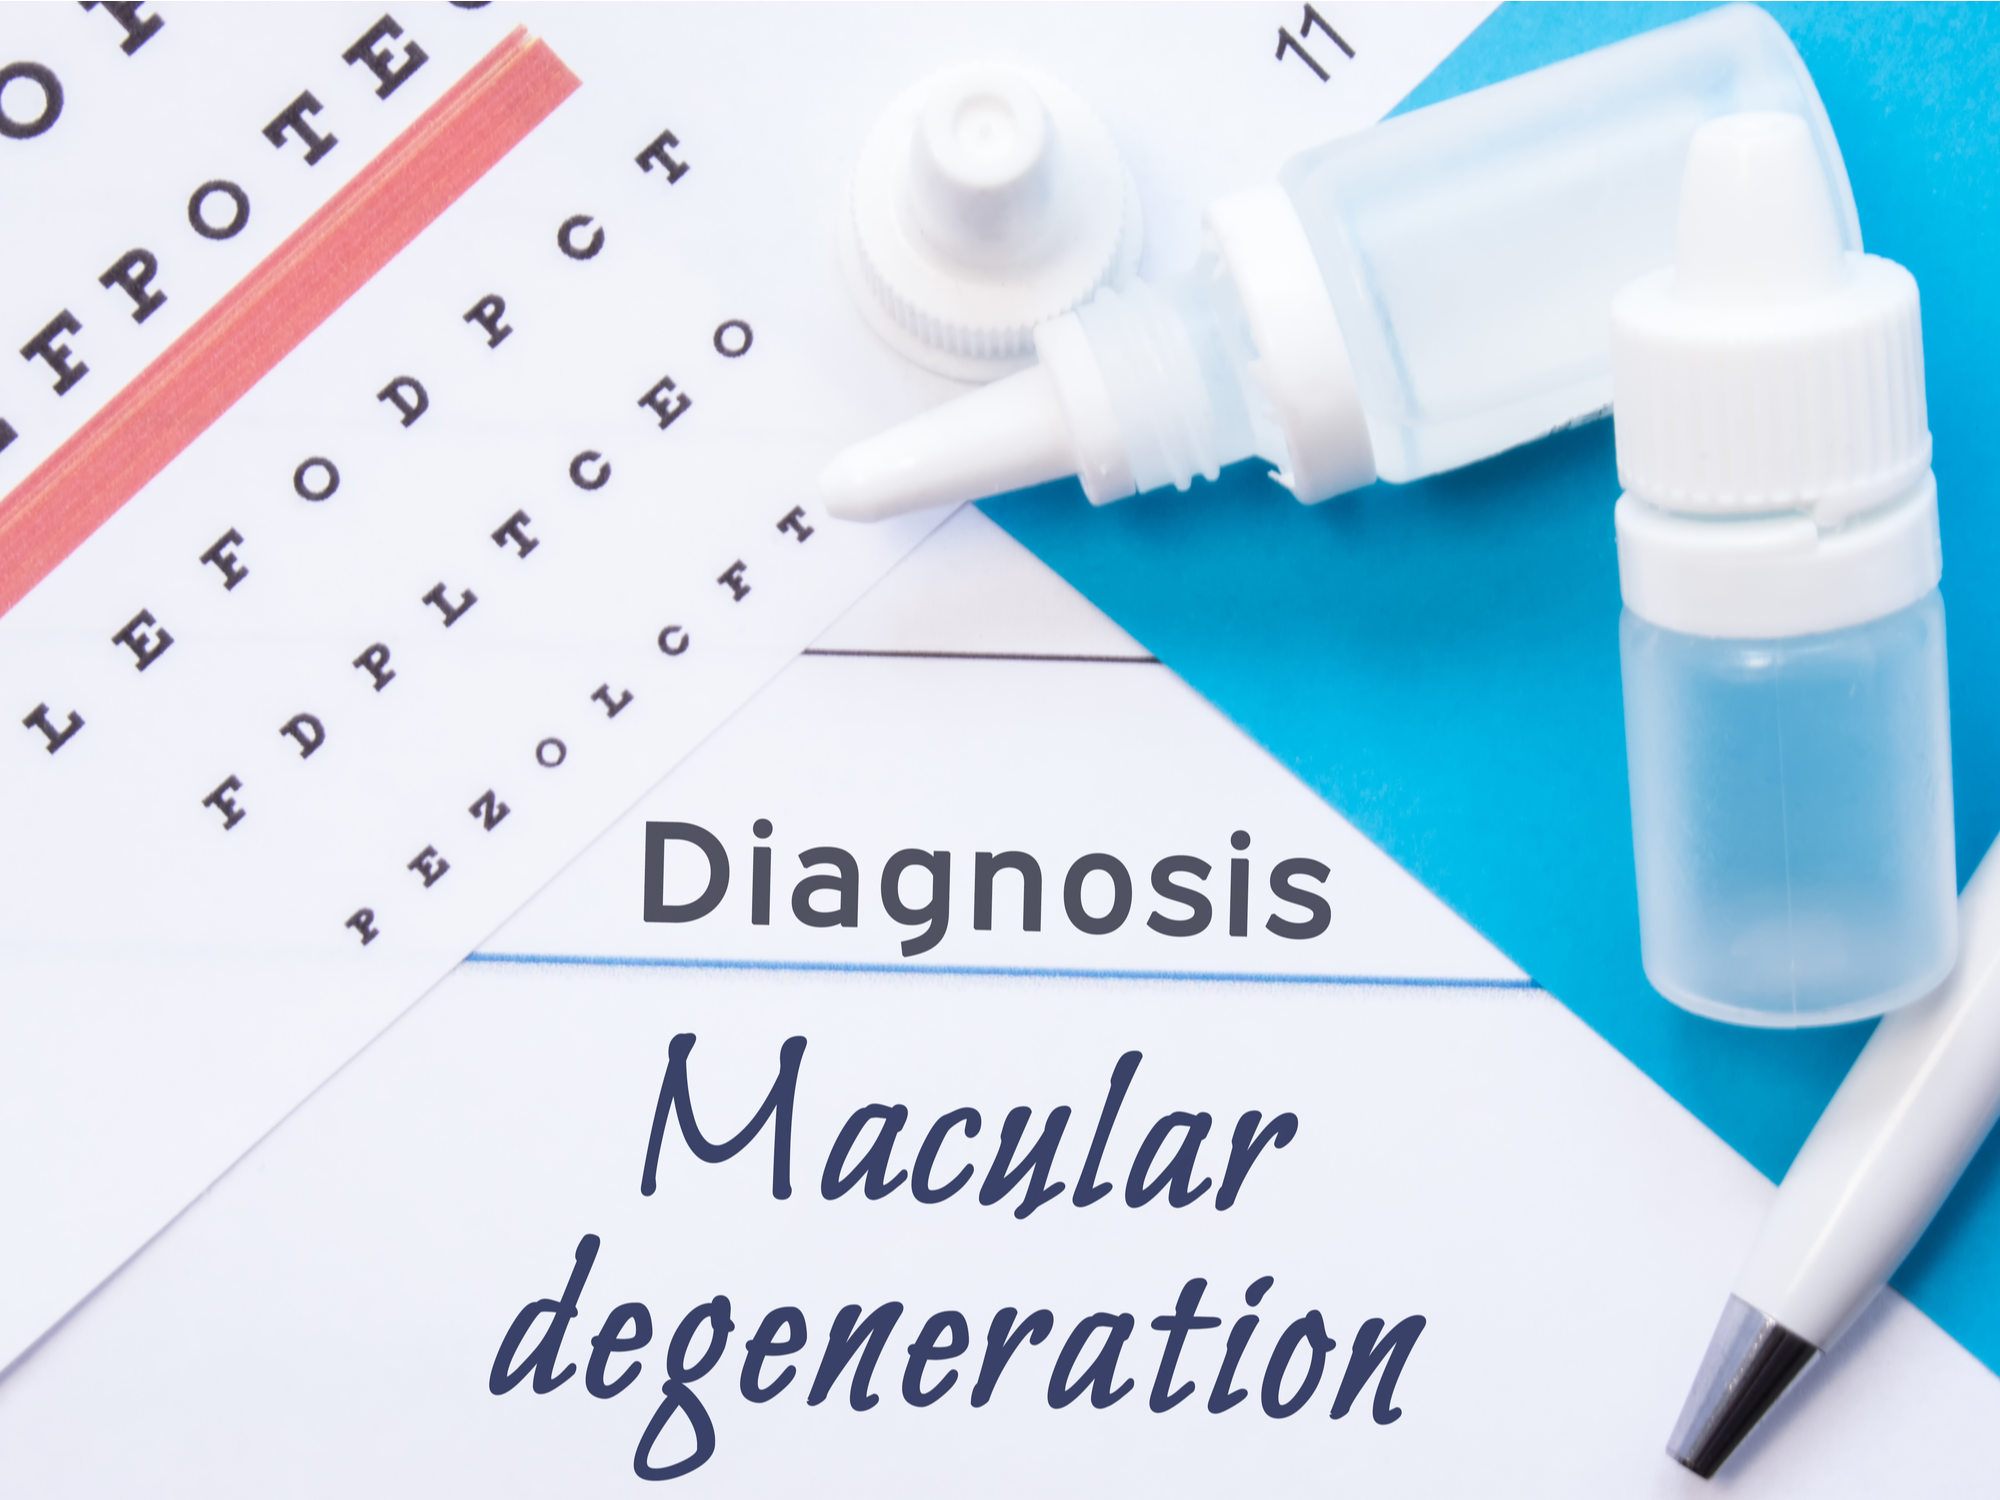 Diagnosing and Caring for Macular Degeneration